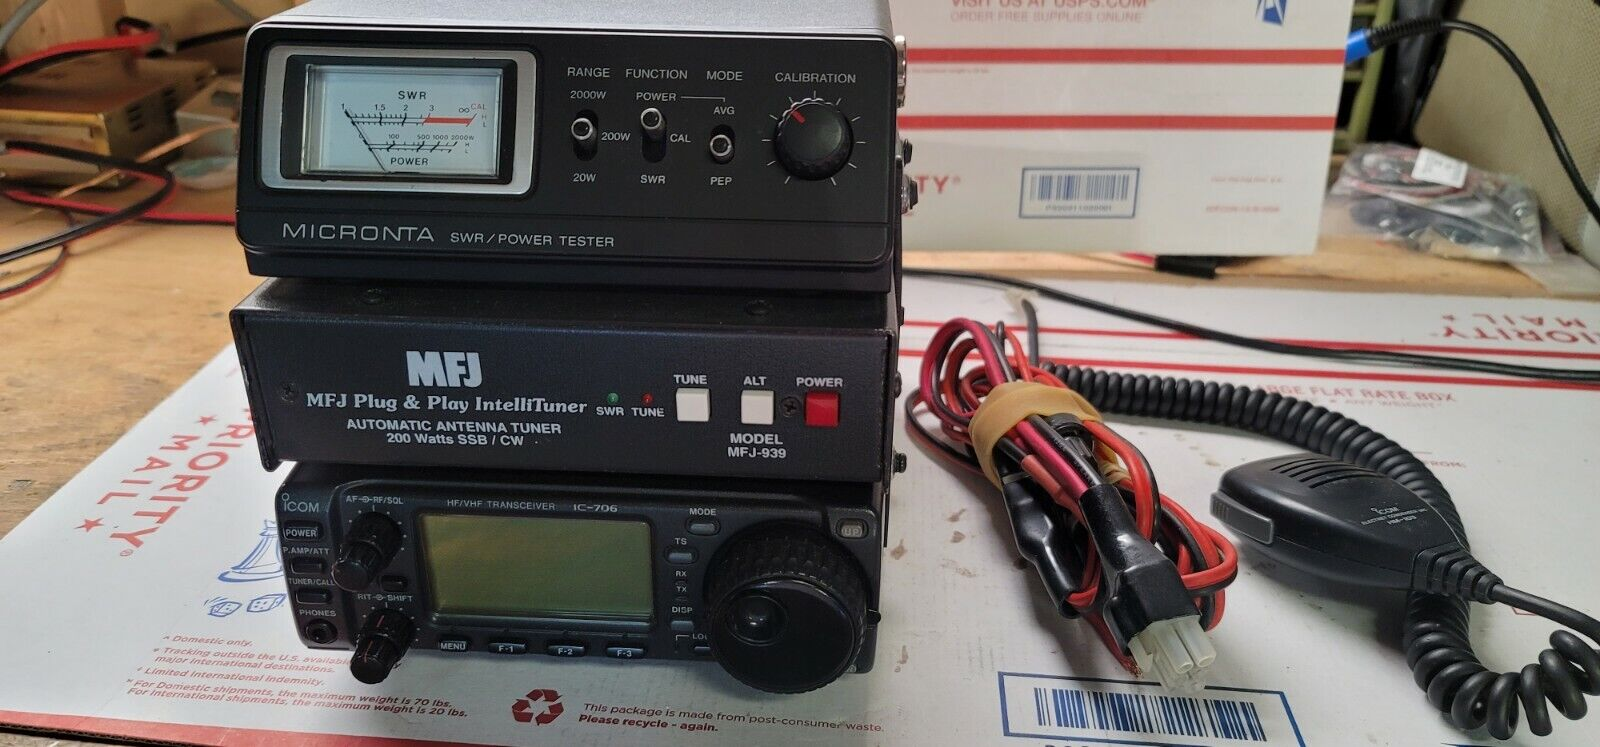 ICOM IC 706 MFJ ANTENNA TUNER MICRONTA SWR POWER METER. Available Now for 700.00